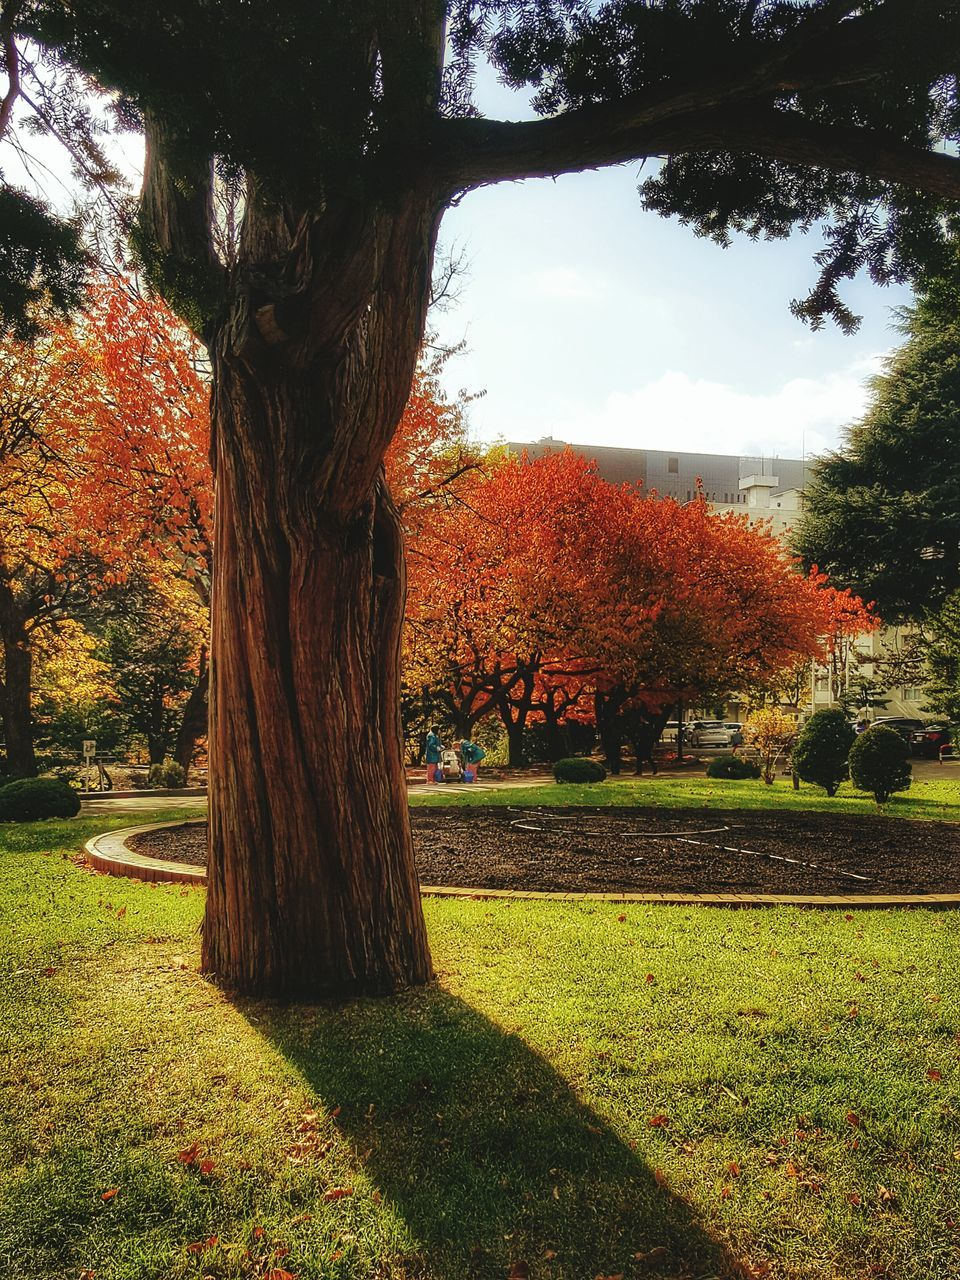 tree, autumn, tree trunk, nature, change, growth, grass, tranquility, beauty in nature, day, tranquil scene, outdoors, park - man made space, scenics, no people, leaf, landscape, sky, branch